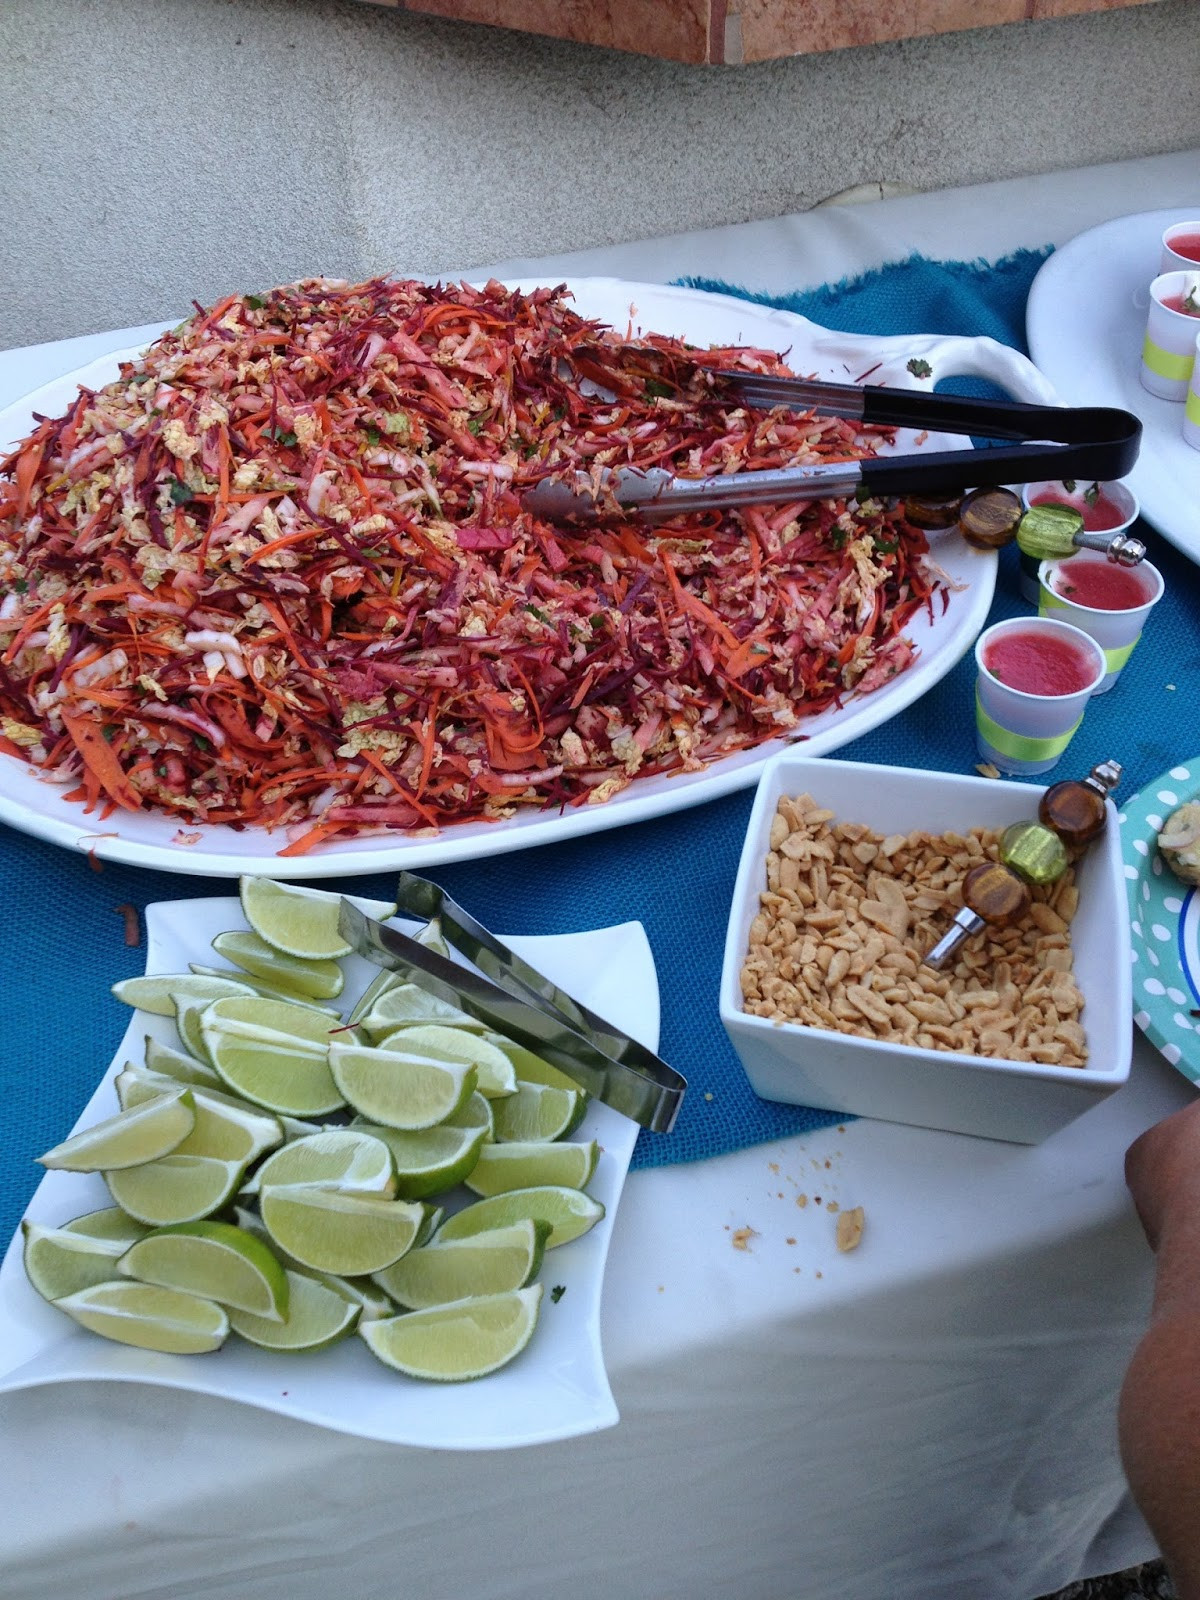 Summertime Party Food Ideas  Clean And Light Summer Party Food For Mom s 60th Birthday